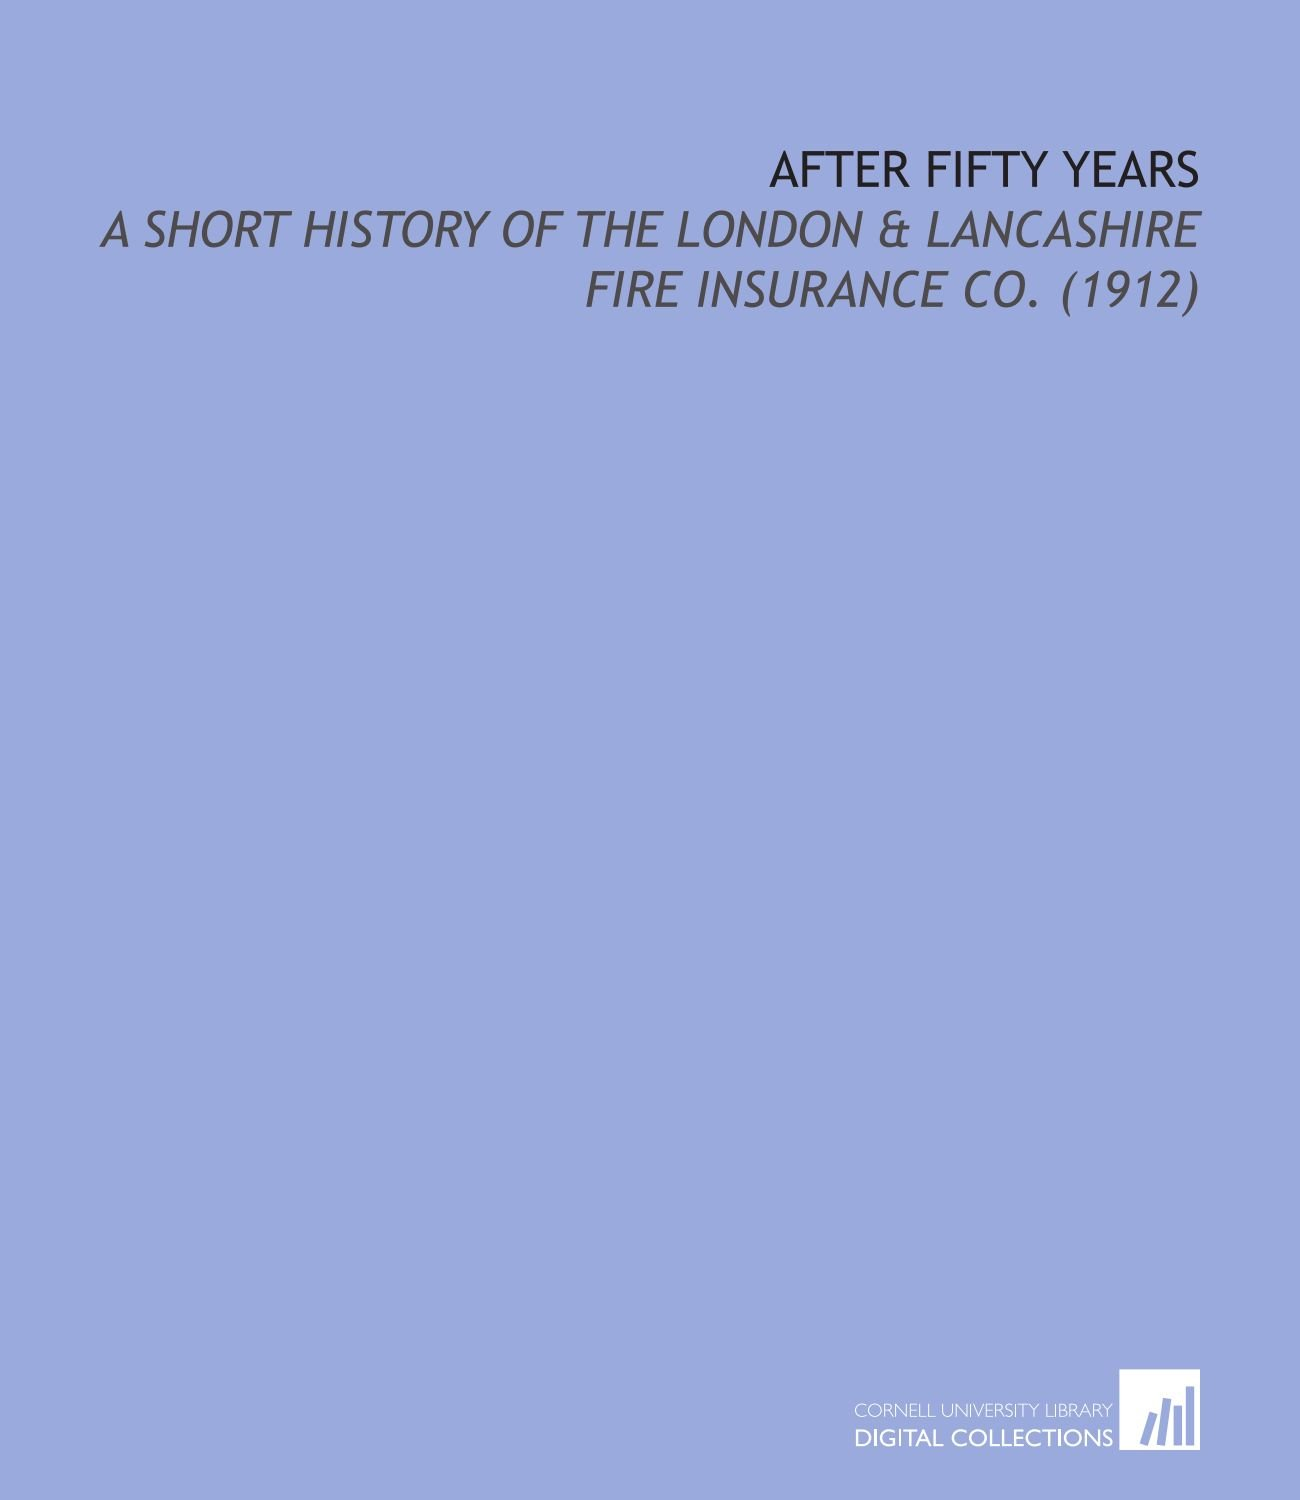 After Fifty Years: a Short History of the London & Lancashire Fire Insurance Co. (1912) pdf